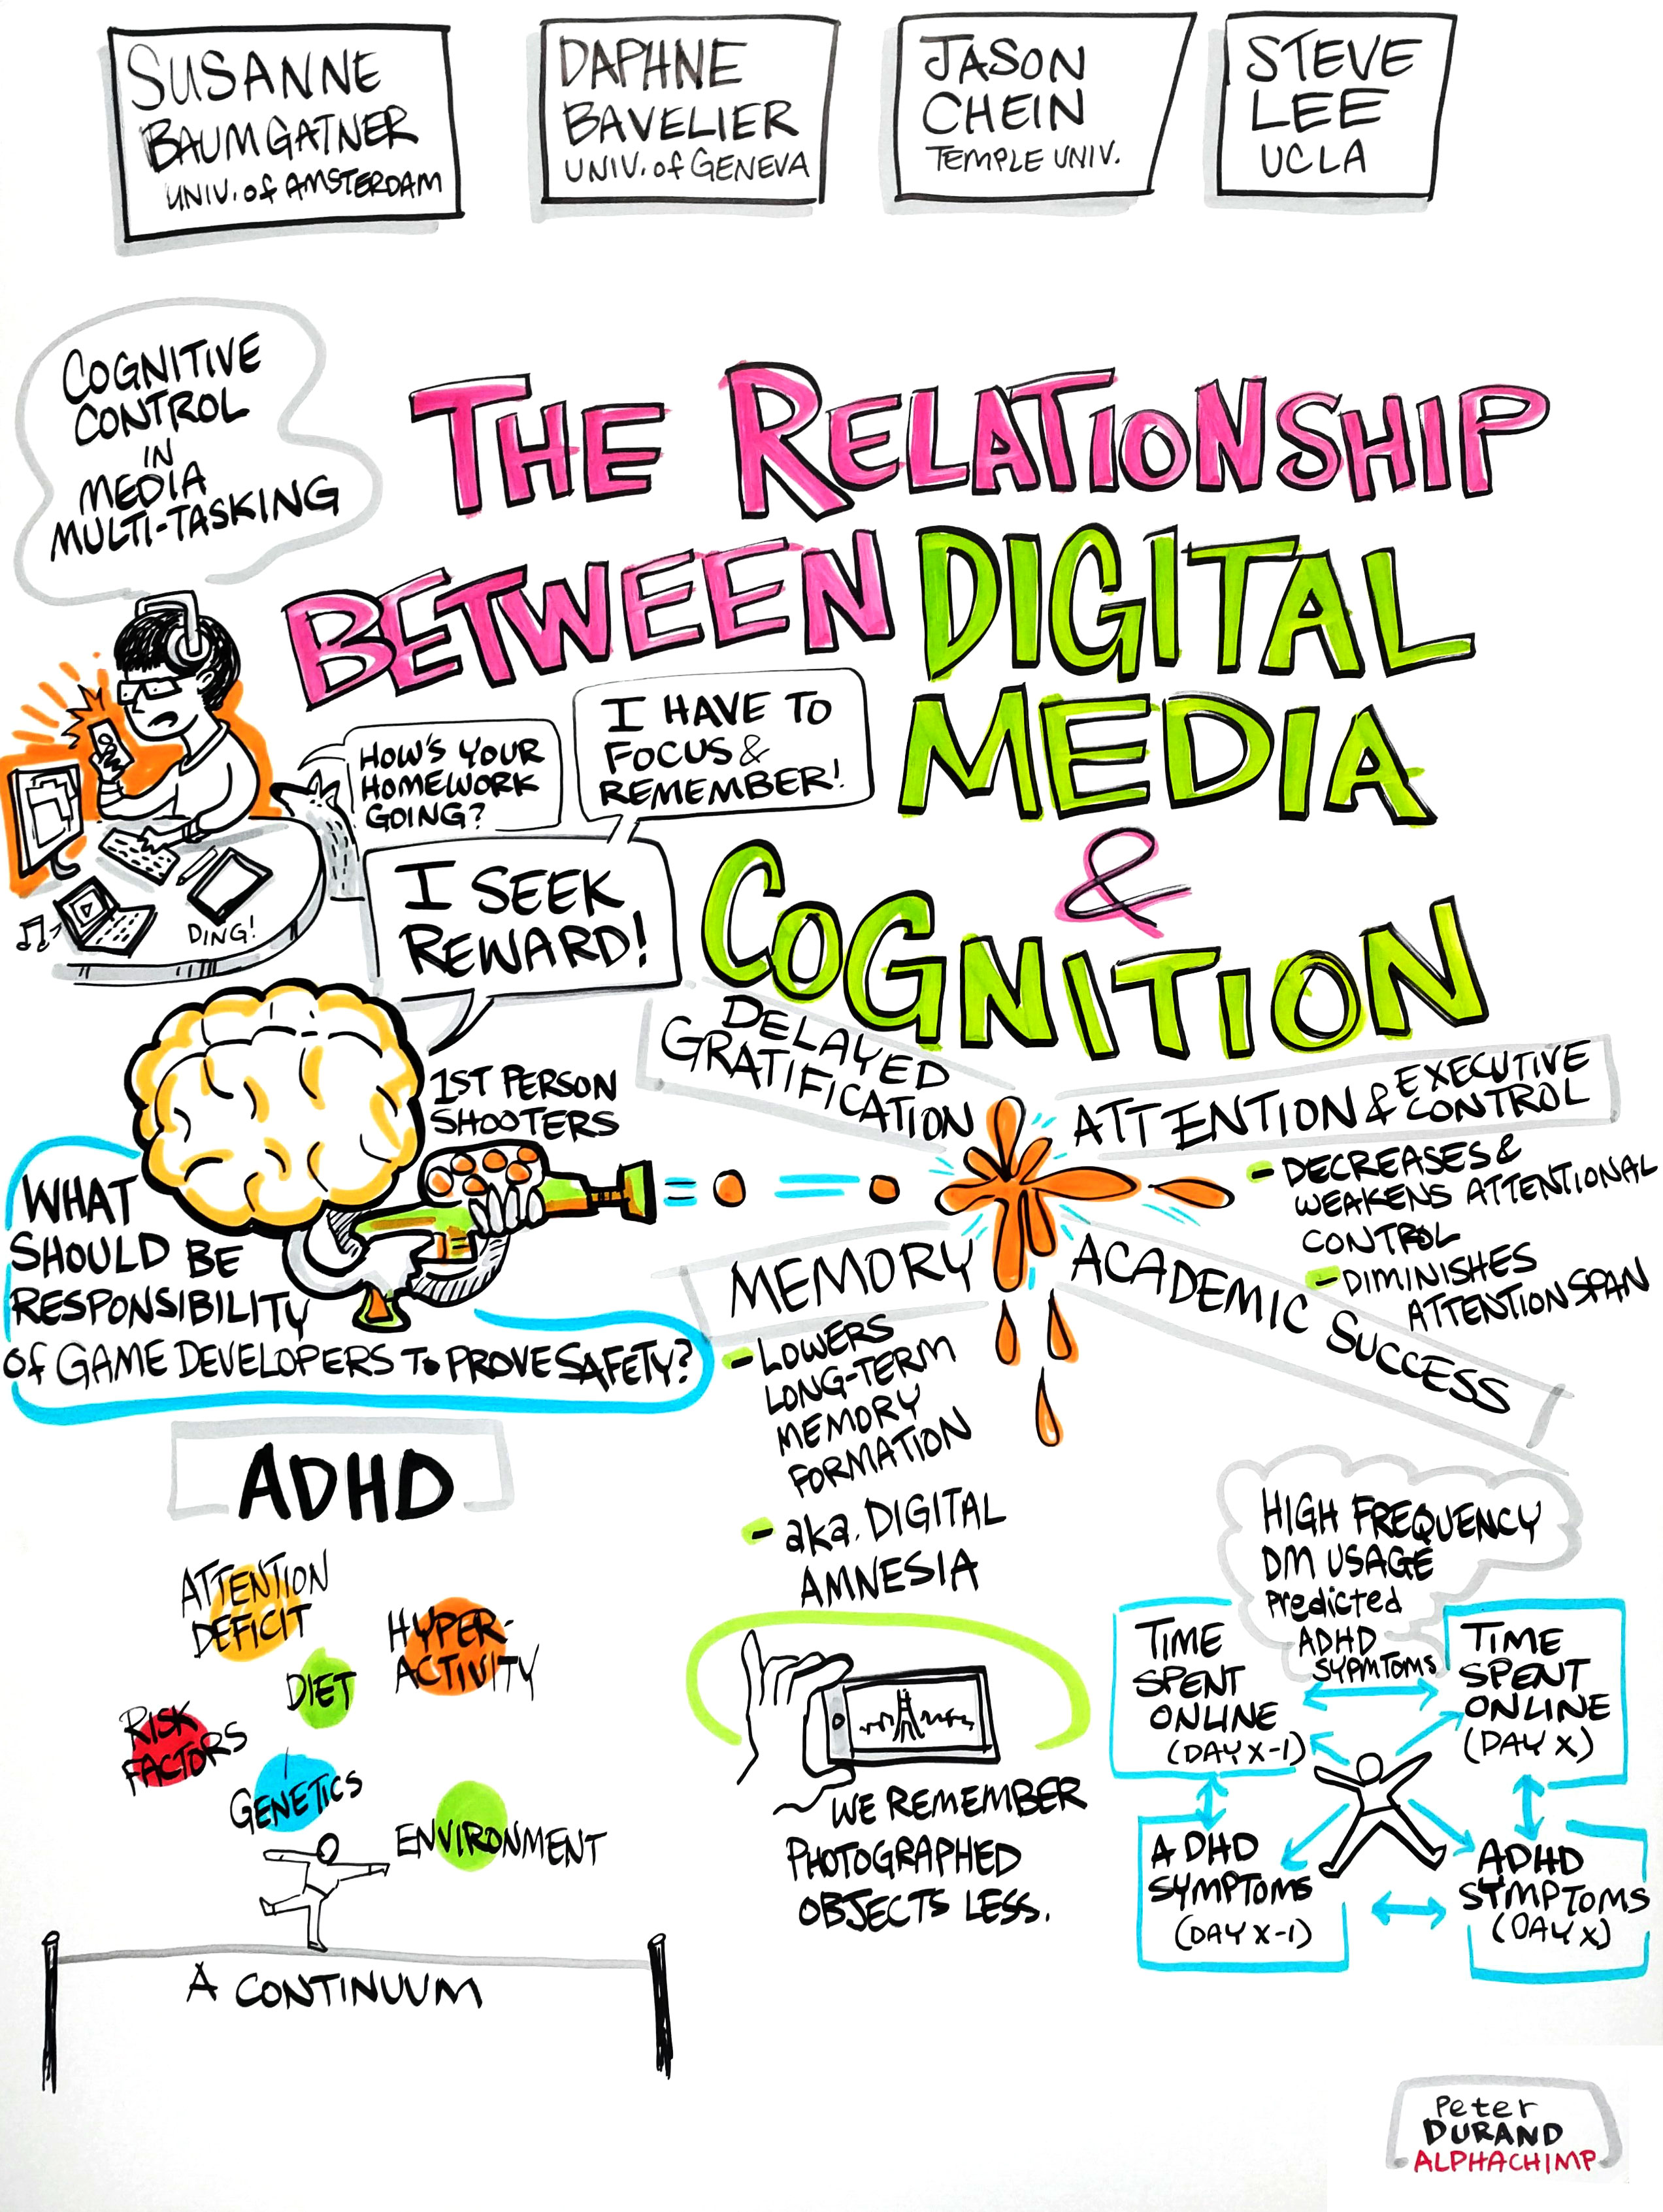 Cognition And Behavior Attention >> The Relationship Between Cognition And Media Behavior